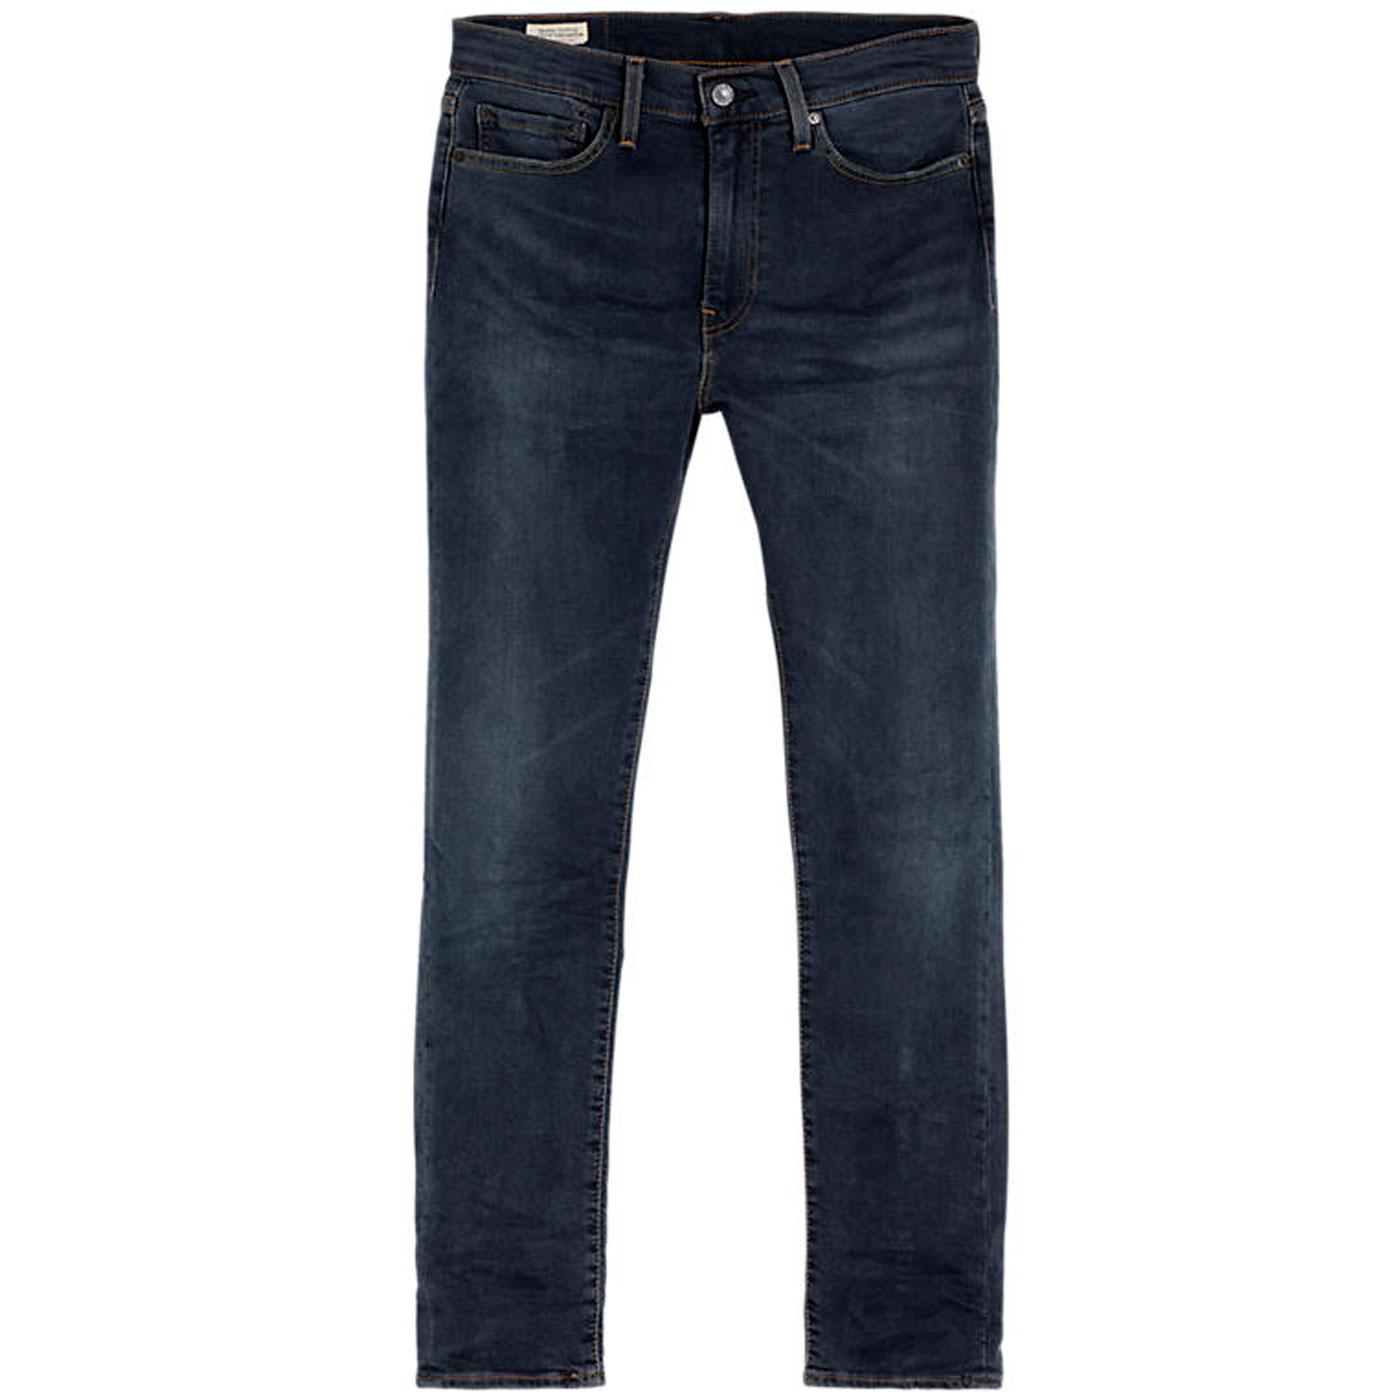 LEVI'S 511 Men's Mod Slim Denim Jeans (Ivy Adv)